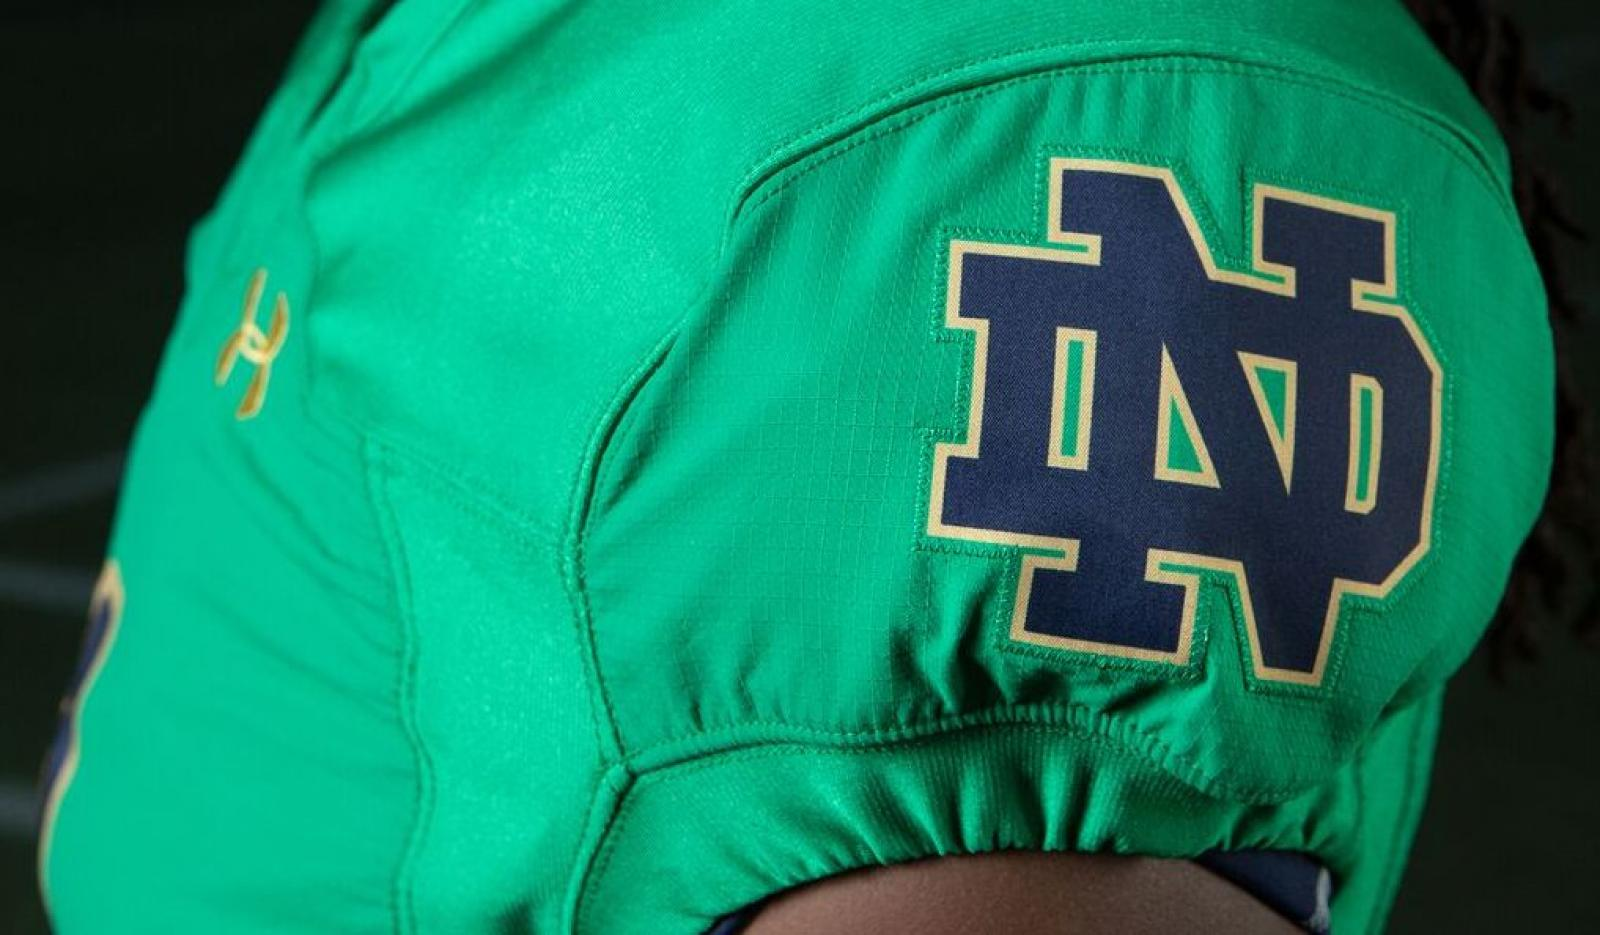 4e4a2e8387b As they get closer to the College Football Playoff with each win, it's time  for Notre Dame to make the competition green with envy.